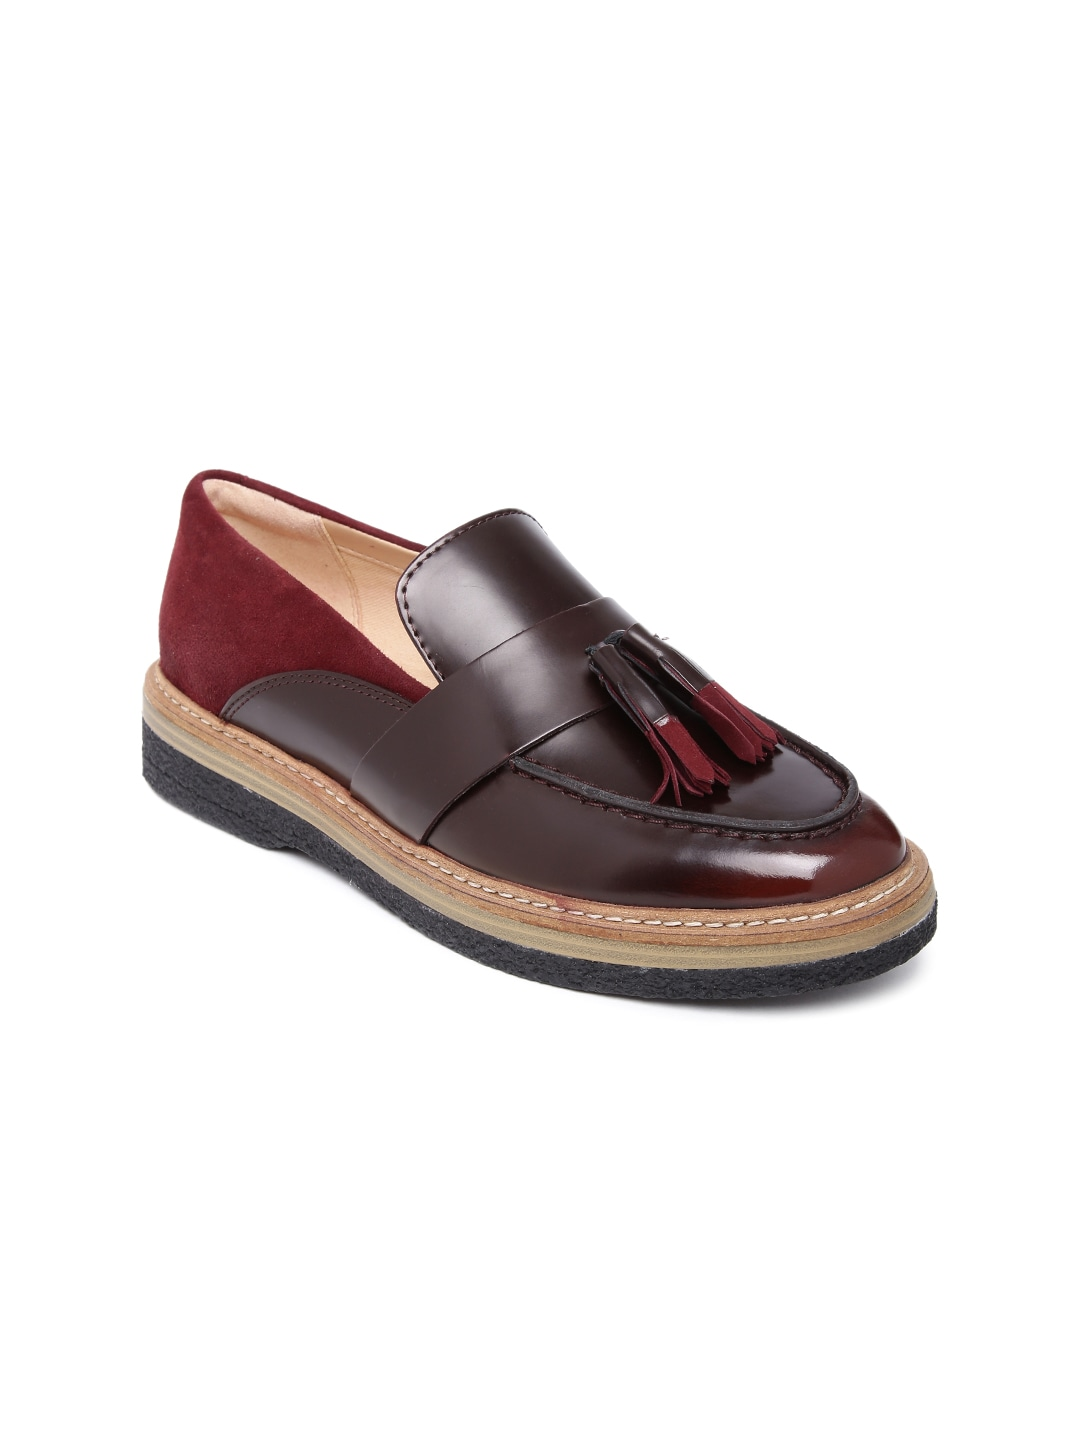 cc5c40f8c8f0 Loafers for Women - Buy Ladies Loafers Online in India